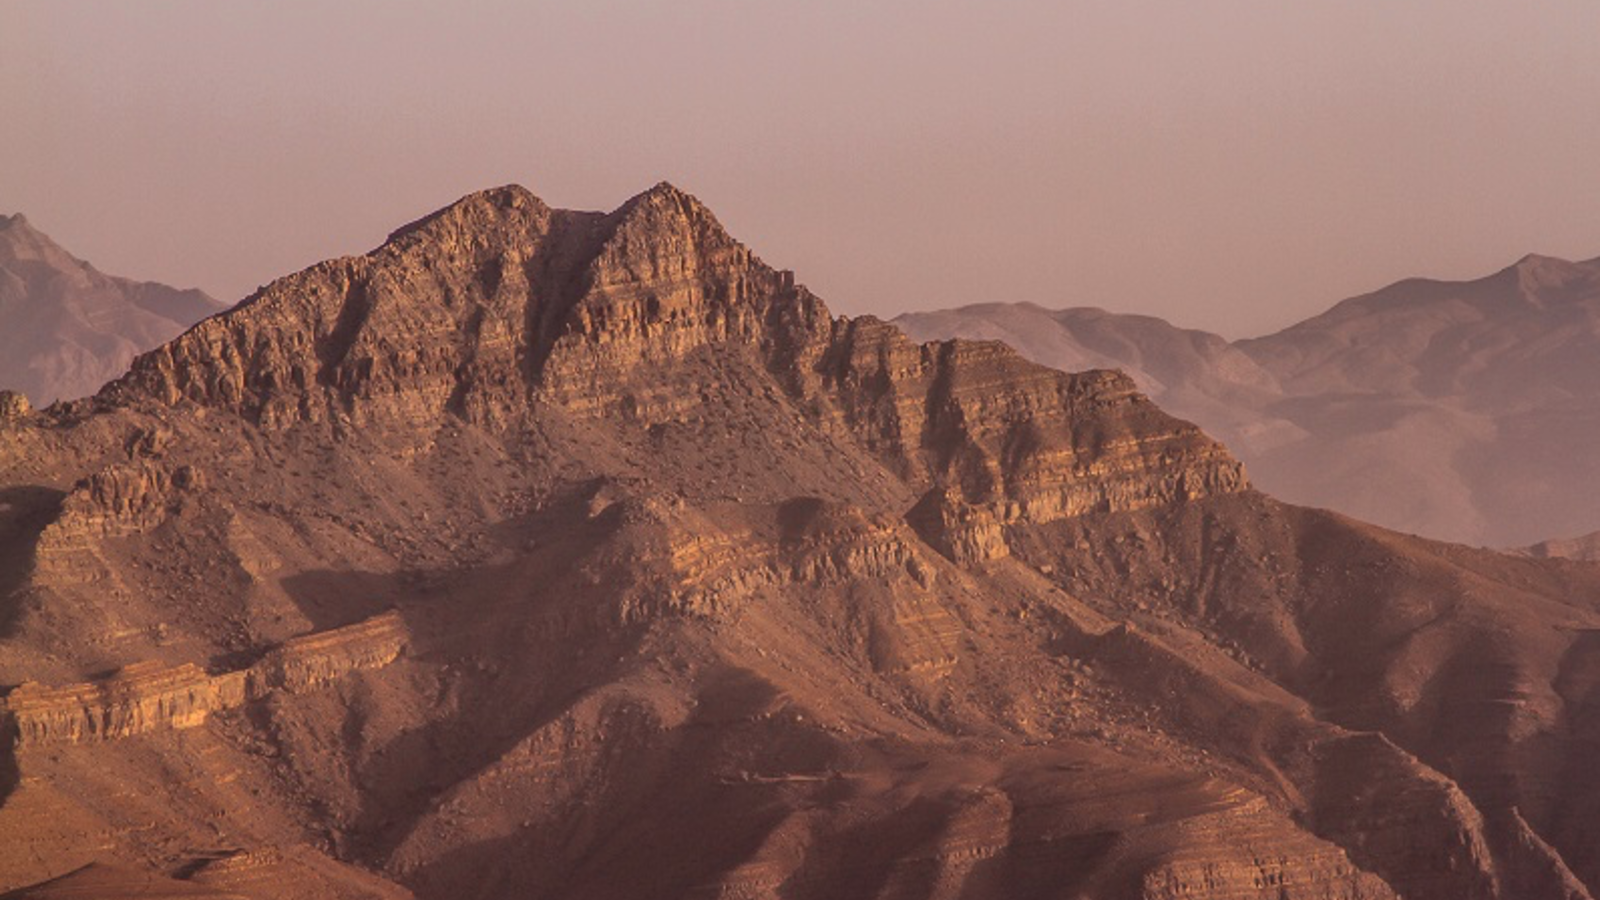 Jebel Jais mountain which is over 1,910m above the sea level, where the tourist fell off. (AFP/File)